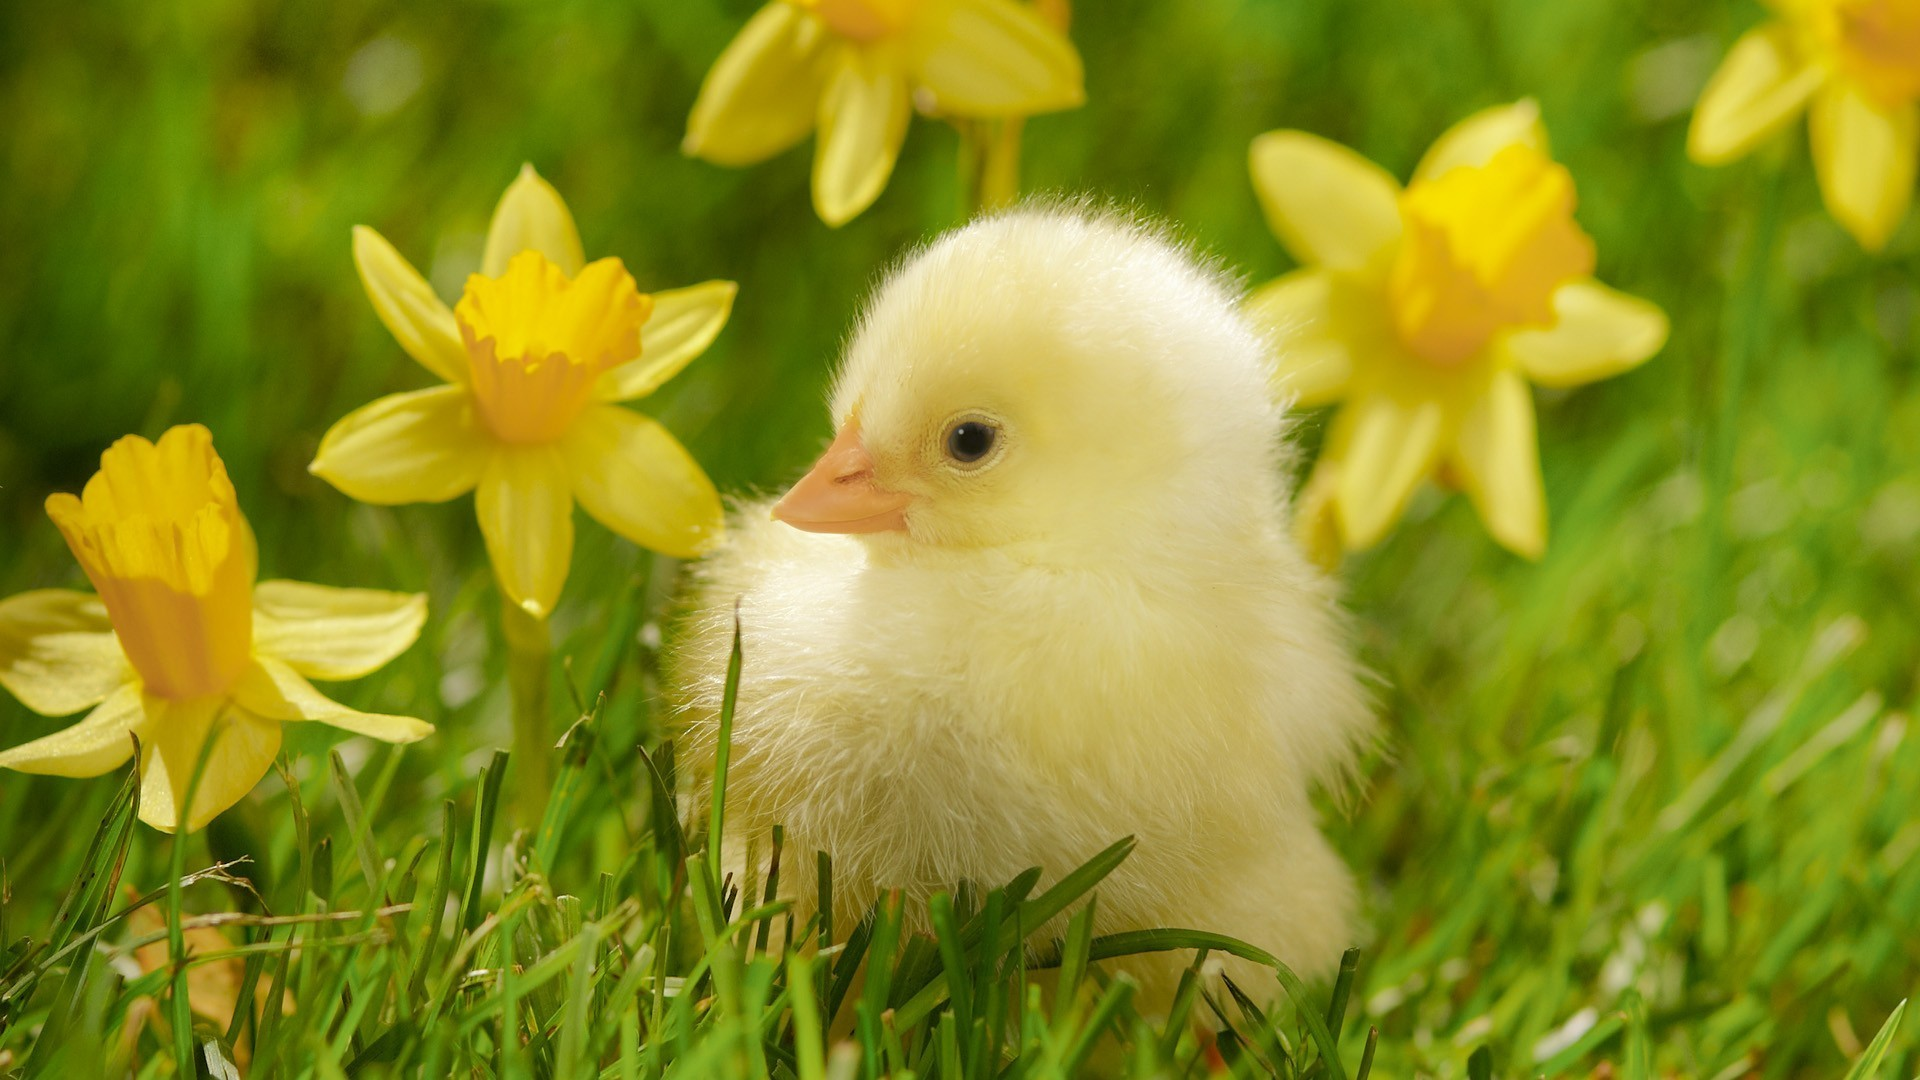 1920x1080  Birds grass spring chickens daffodils yellow flowers wallpaper